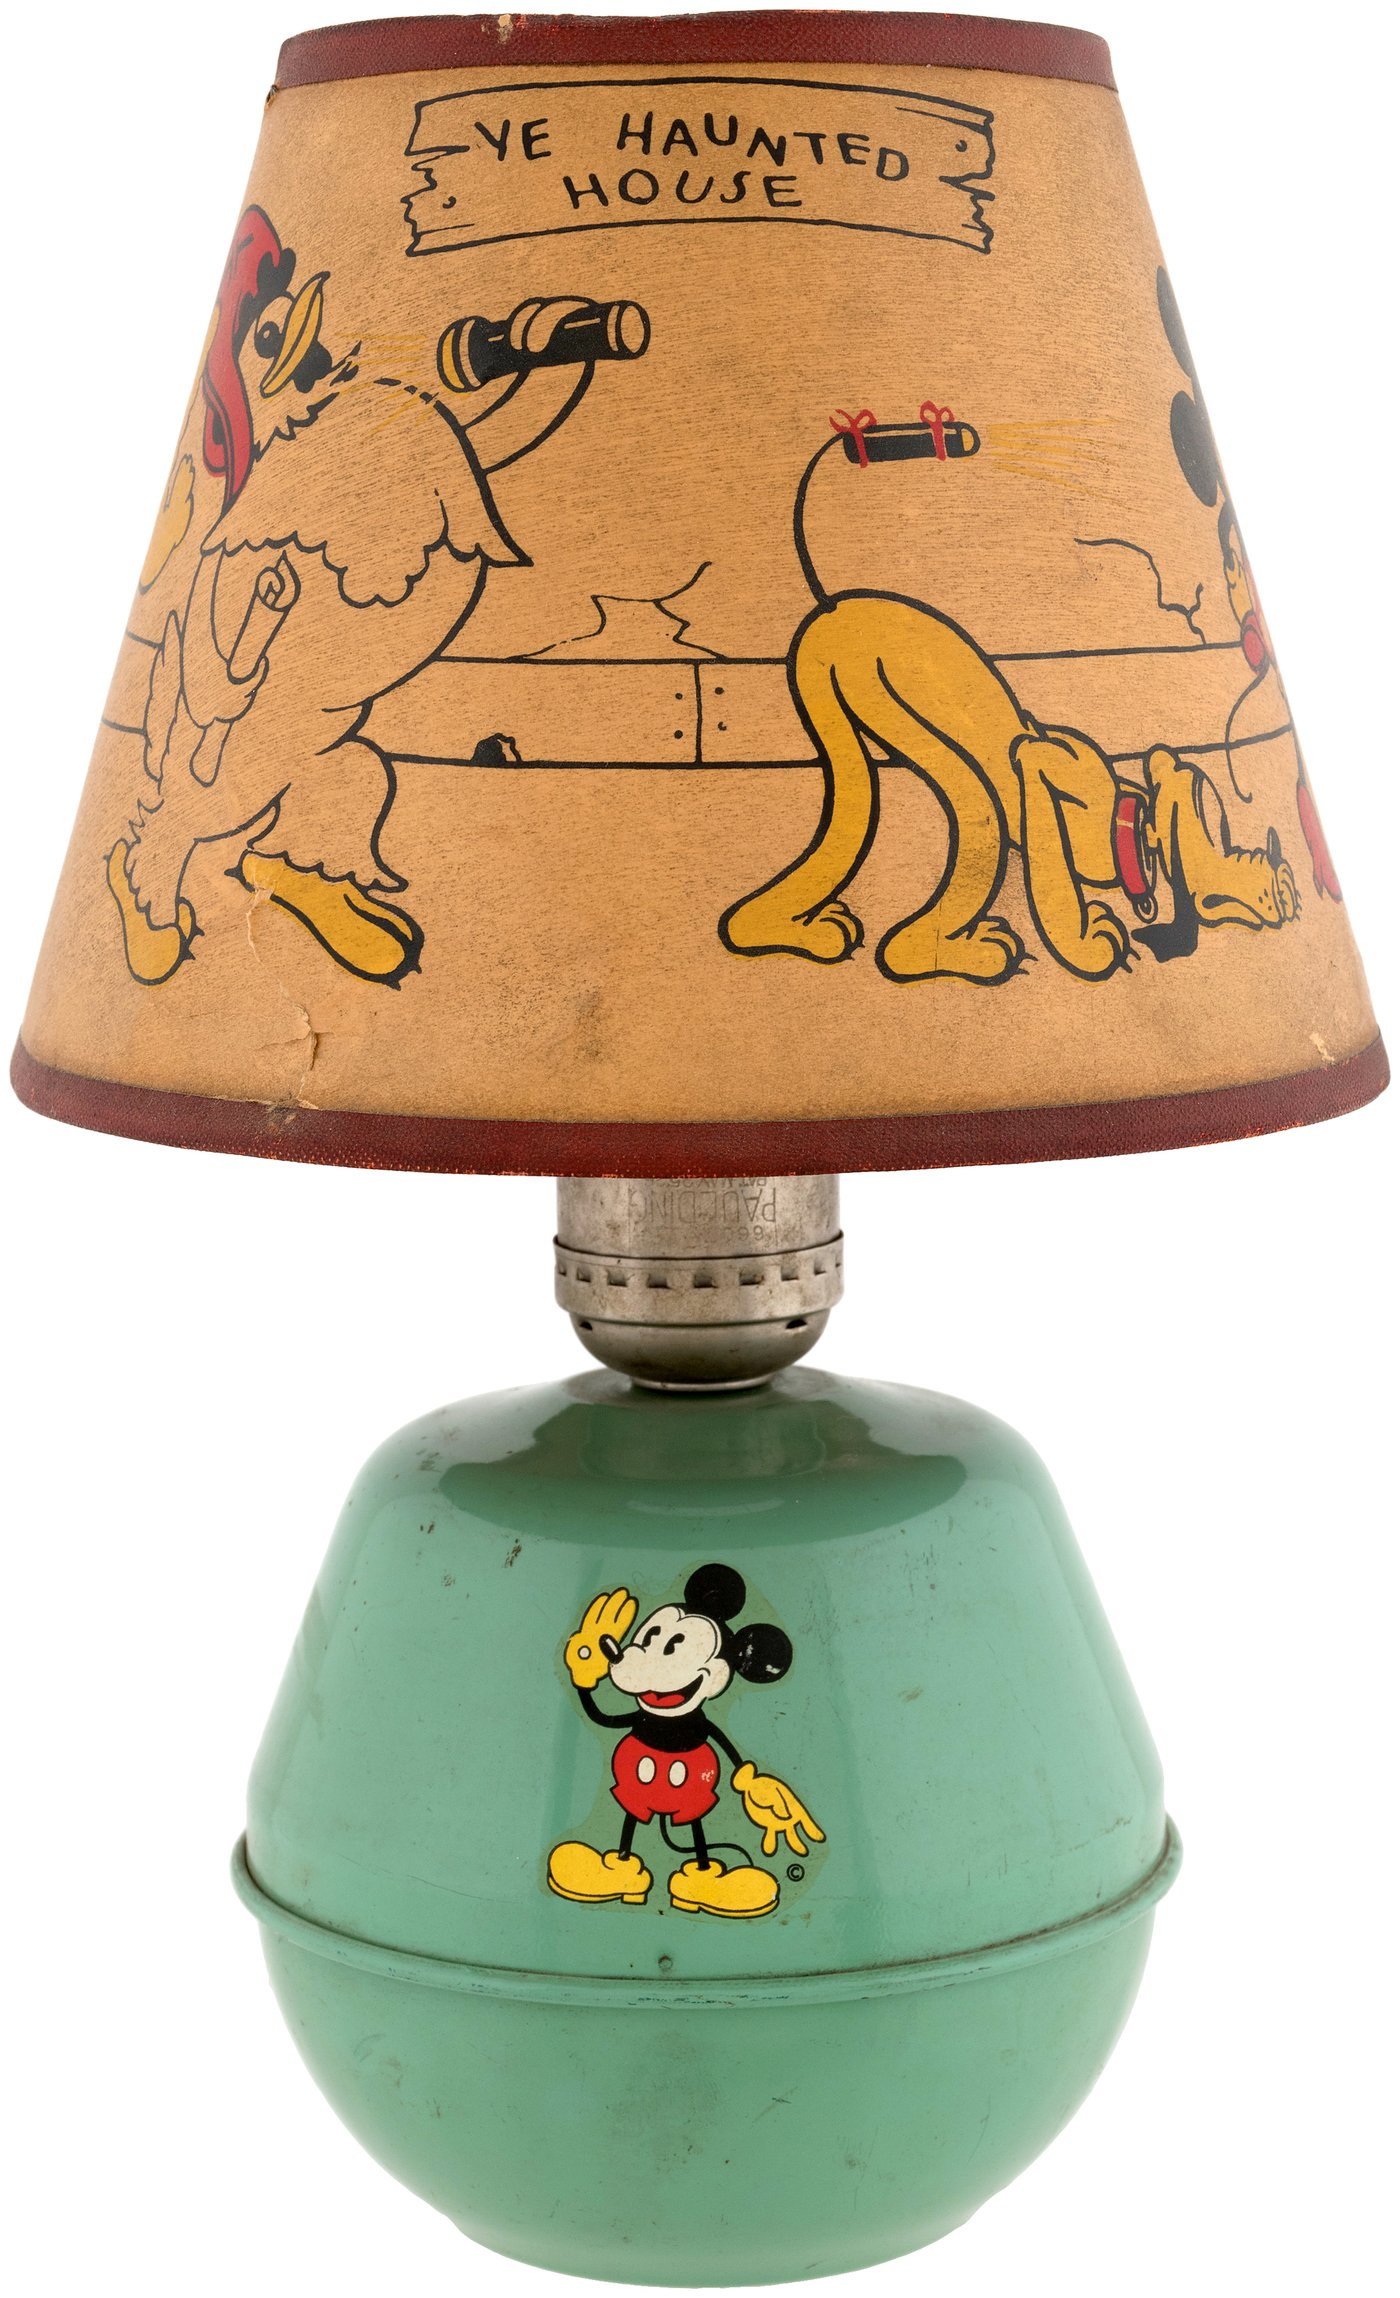 Hakes mickey mouse lamp with rare shade hakes americana collectibles aloadofball Images